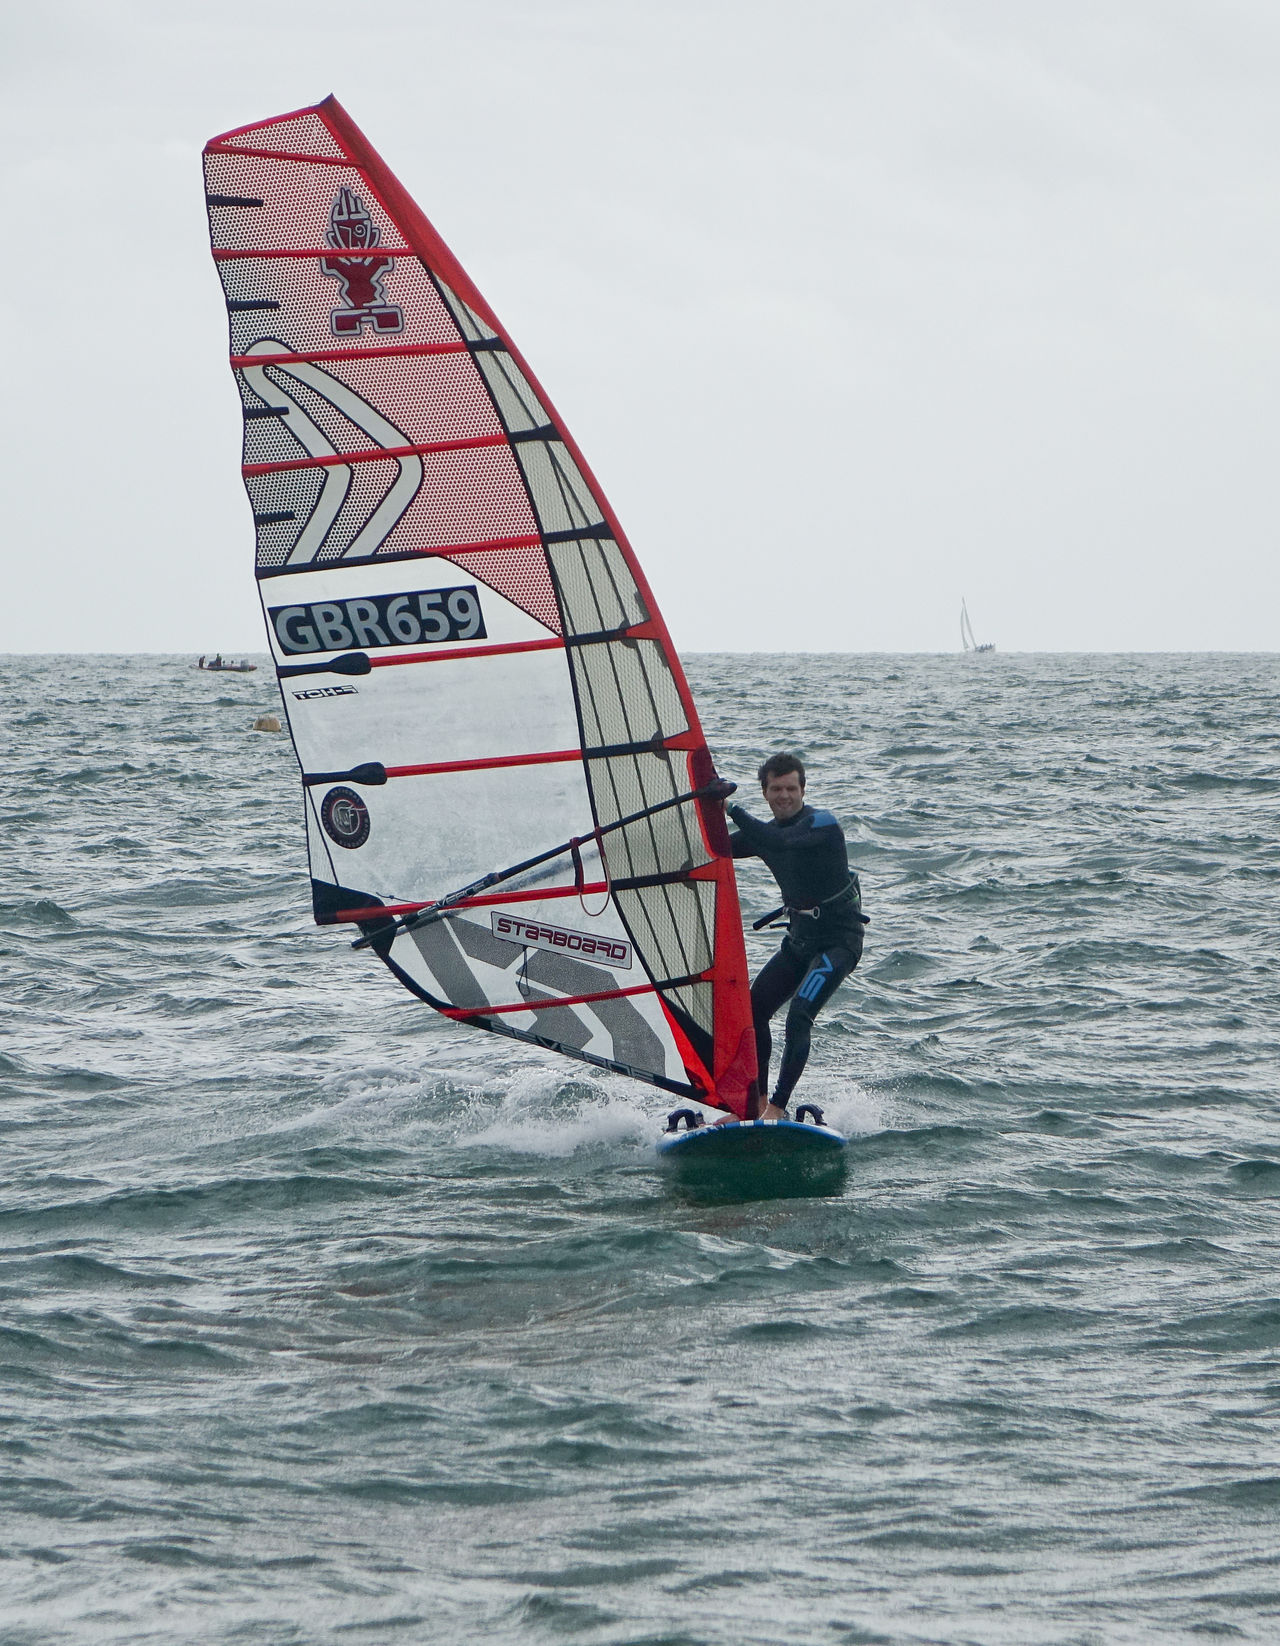 Hayling Island, UK. 3rd September 2016. Windsurfers competing in the National Watersports Festival. Low pressure conditions provided strong winds for this annual event. England England🇬🇧 Festival Fleet Hampshire  Hants Hayling Island  National Watersports Festival Nwf Race Windsurf Windsurf Competition Windsurf Life Windsurfen Windsurfer Windsurfers Windsurfing